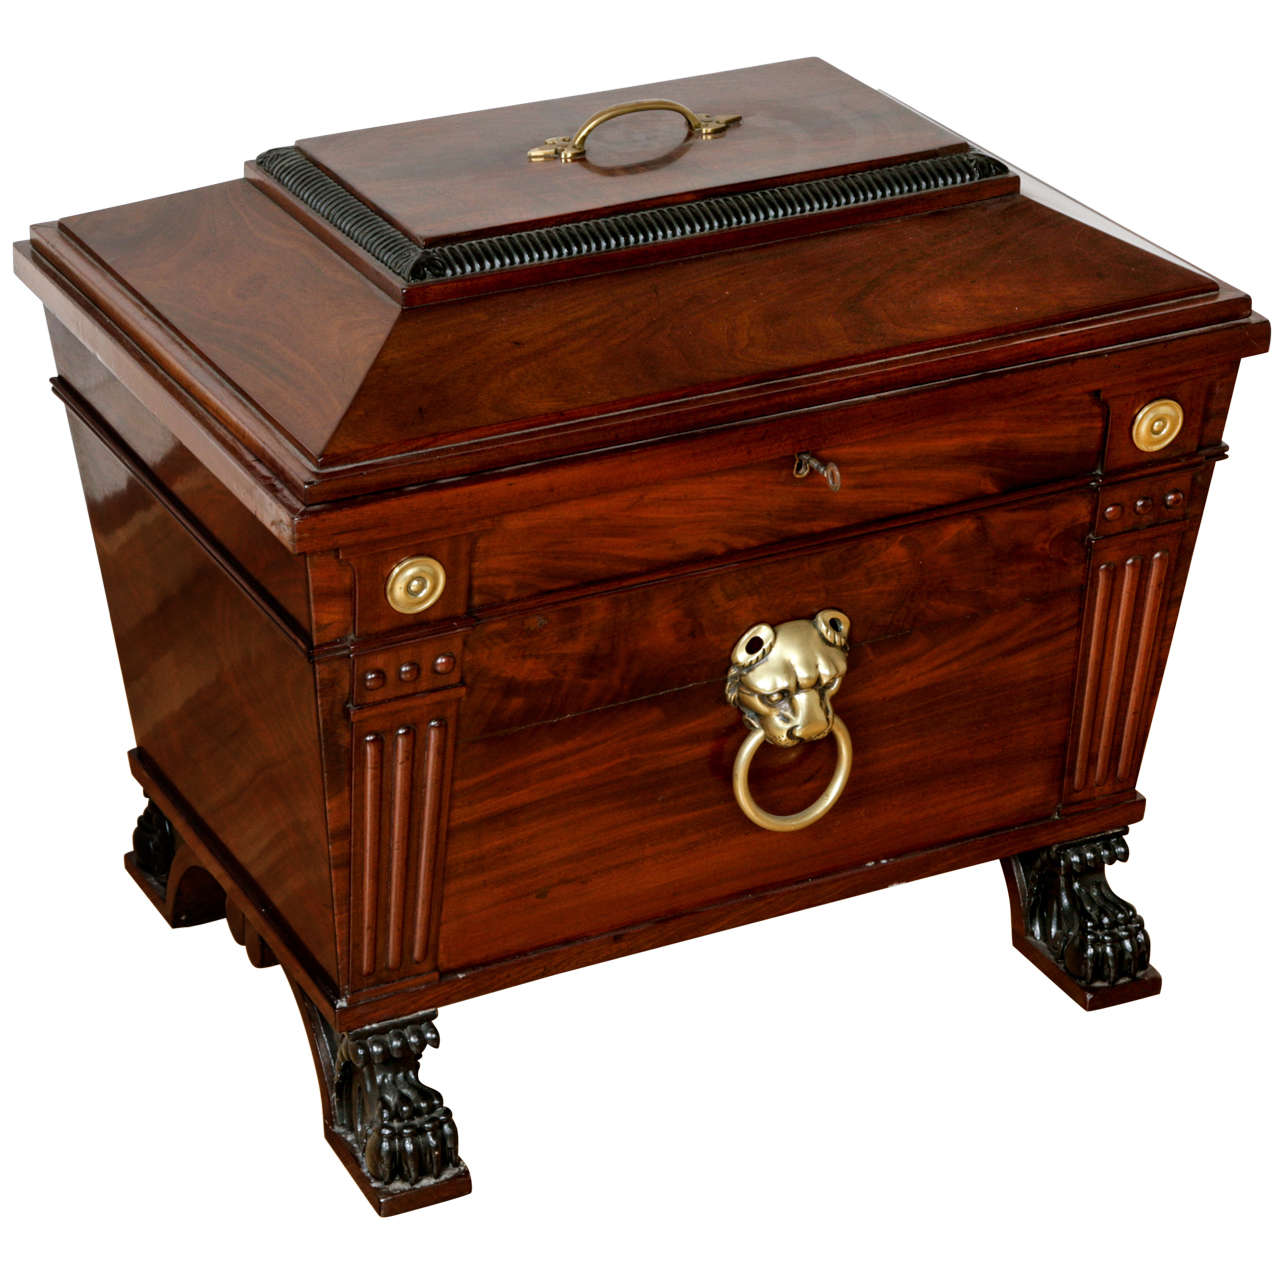 George IV Style Brass-Mounted Mahogany Wine Cooler 1